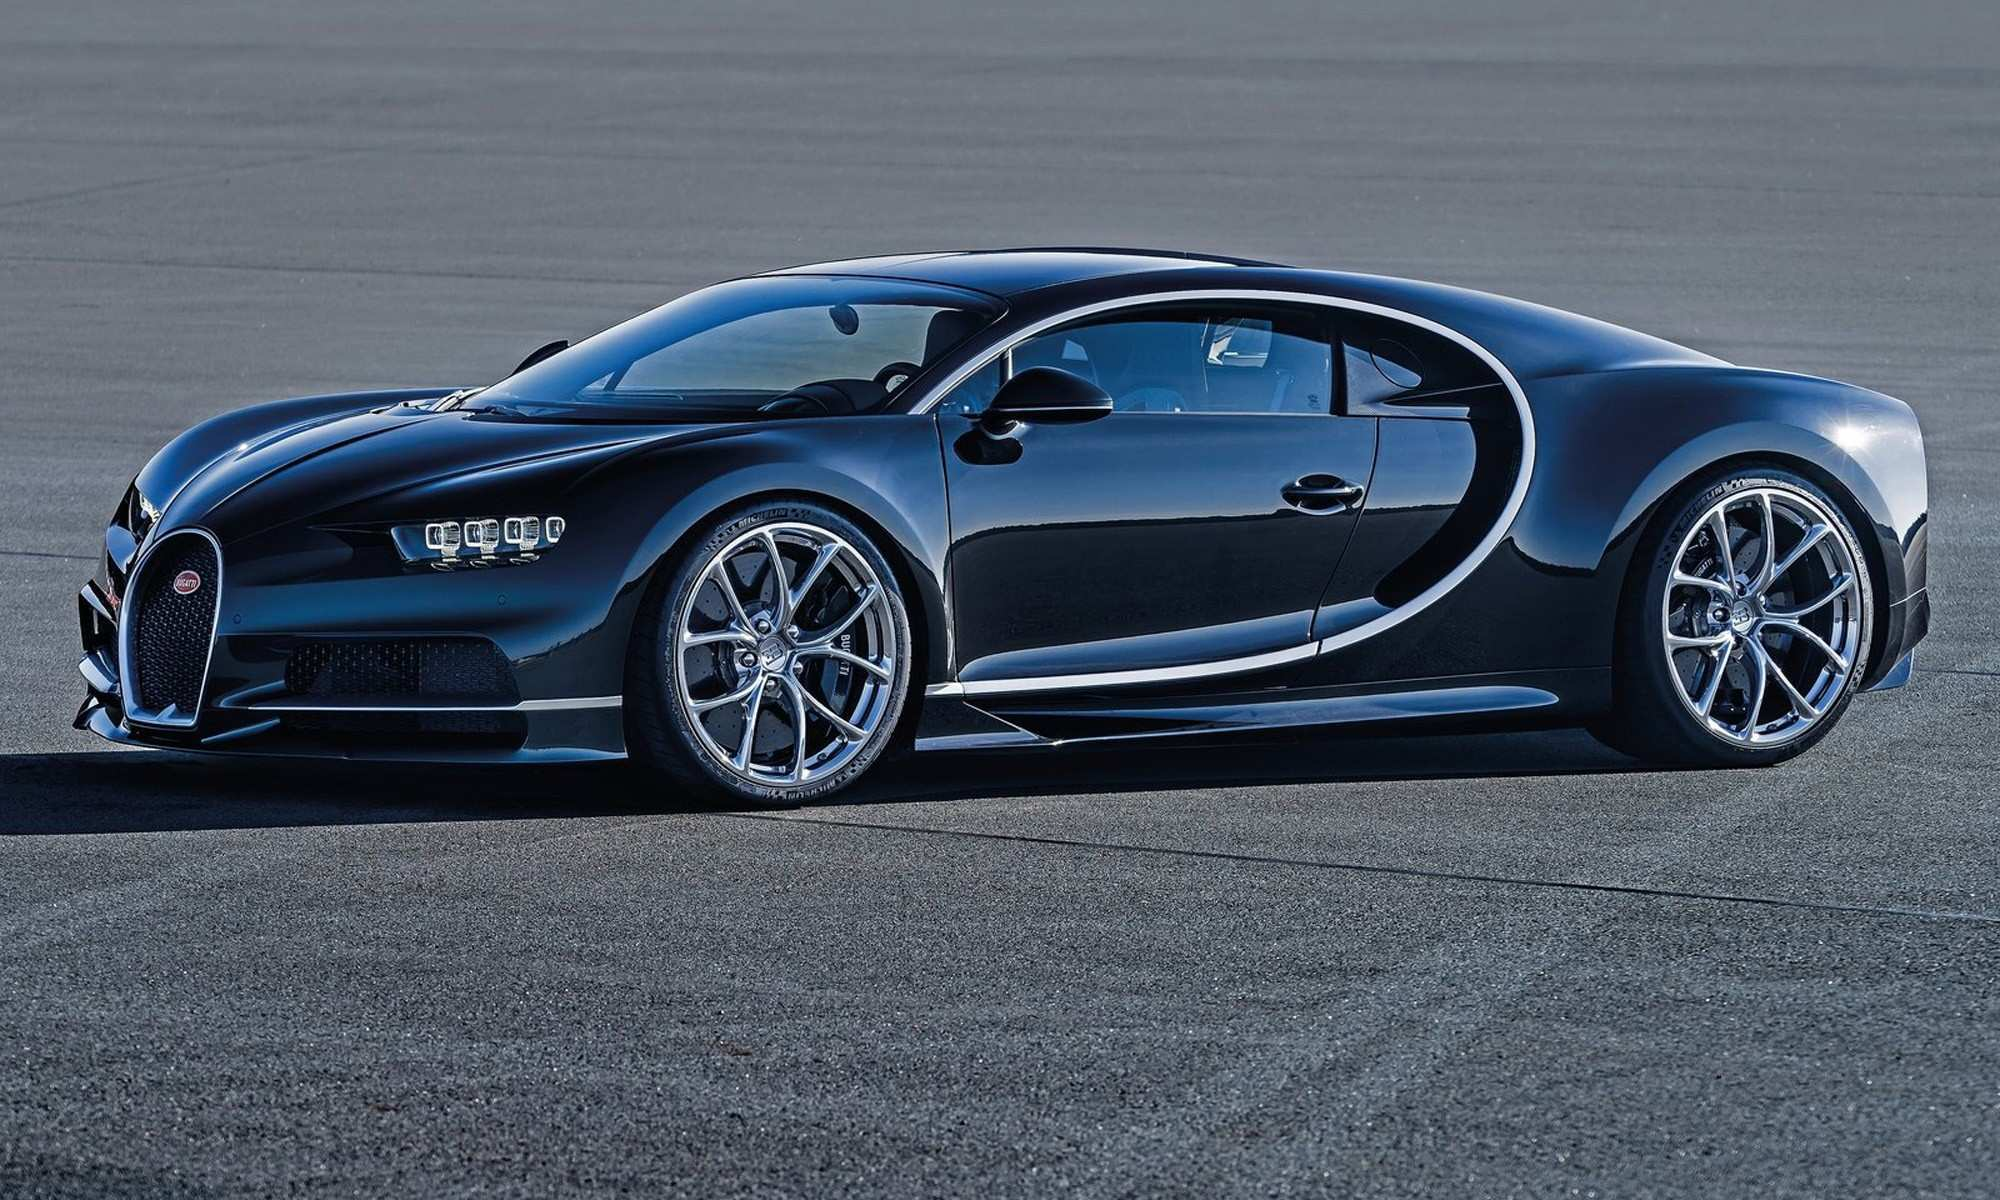 90 The Best 2020 Bugatti Veyron Redesign And Review